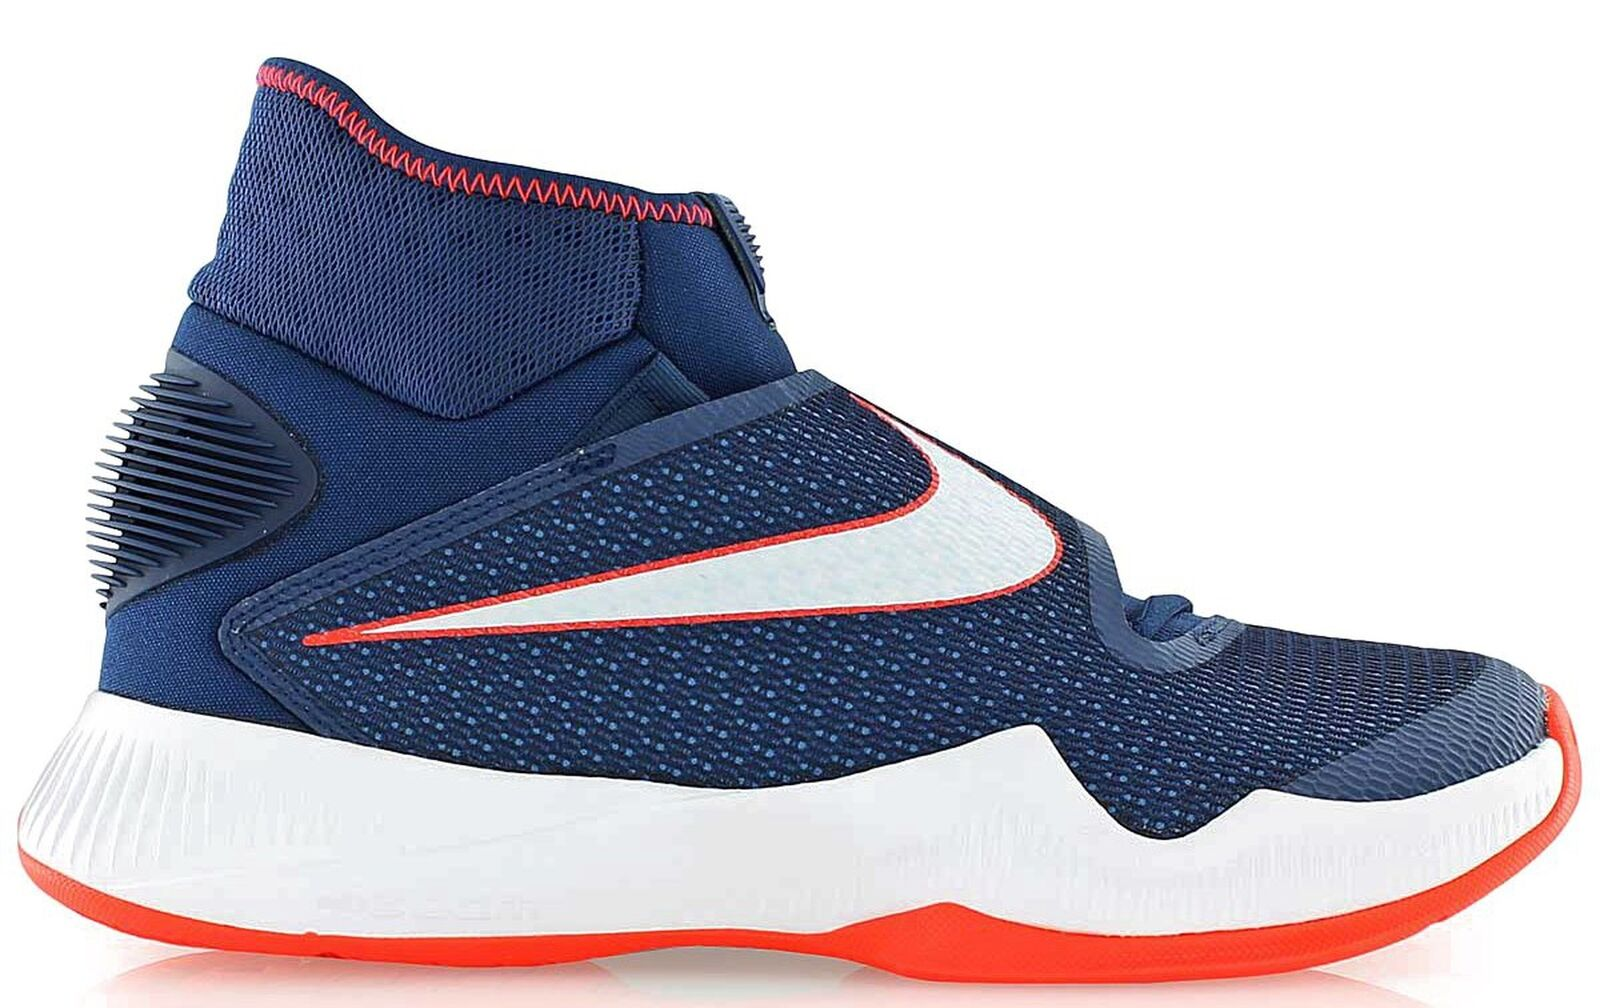 Nike Men's Zoom Hyperrev 2018 Basketball Shoe Size 11